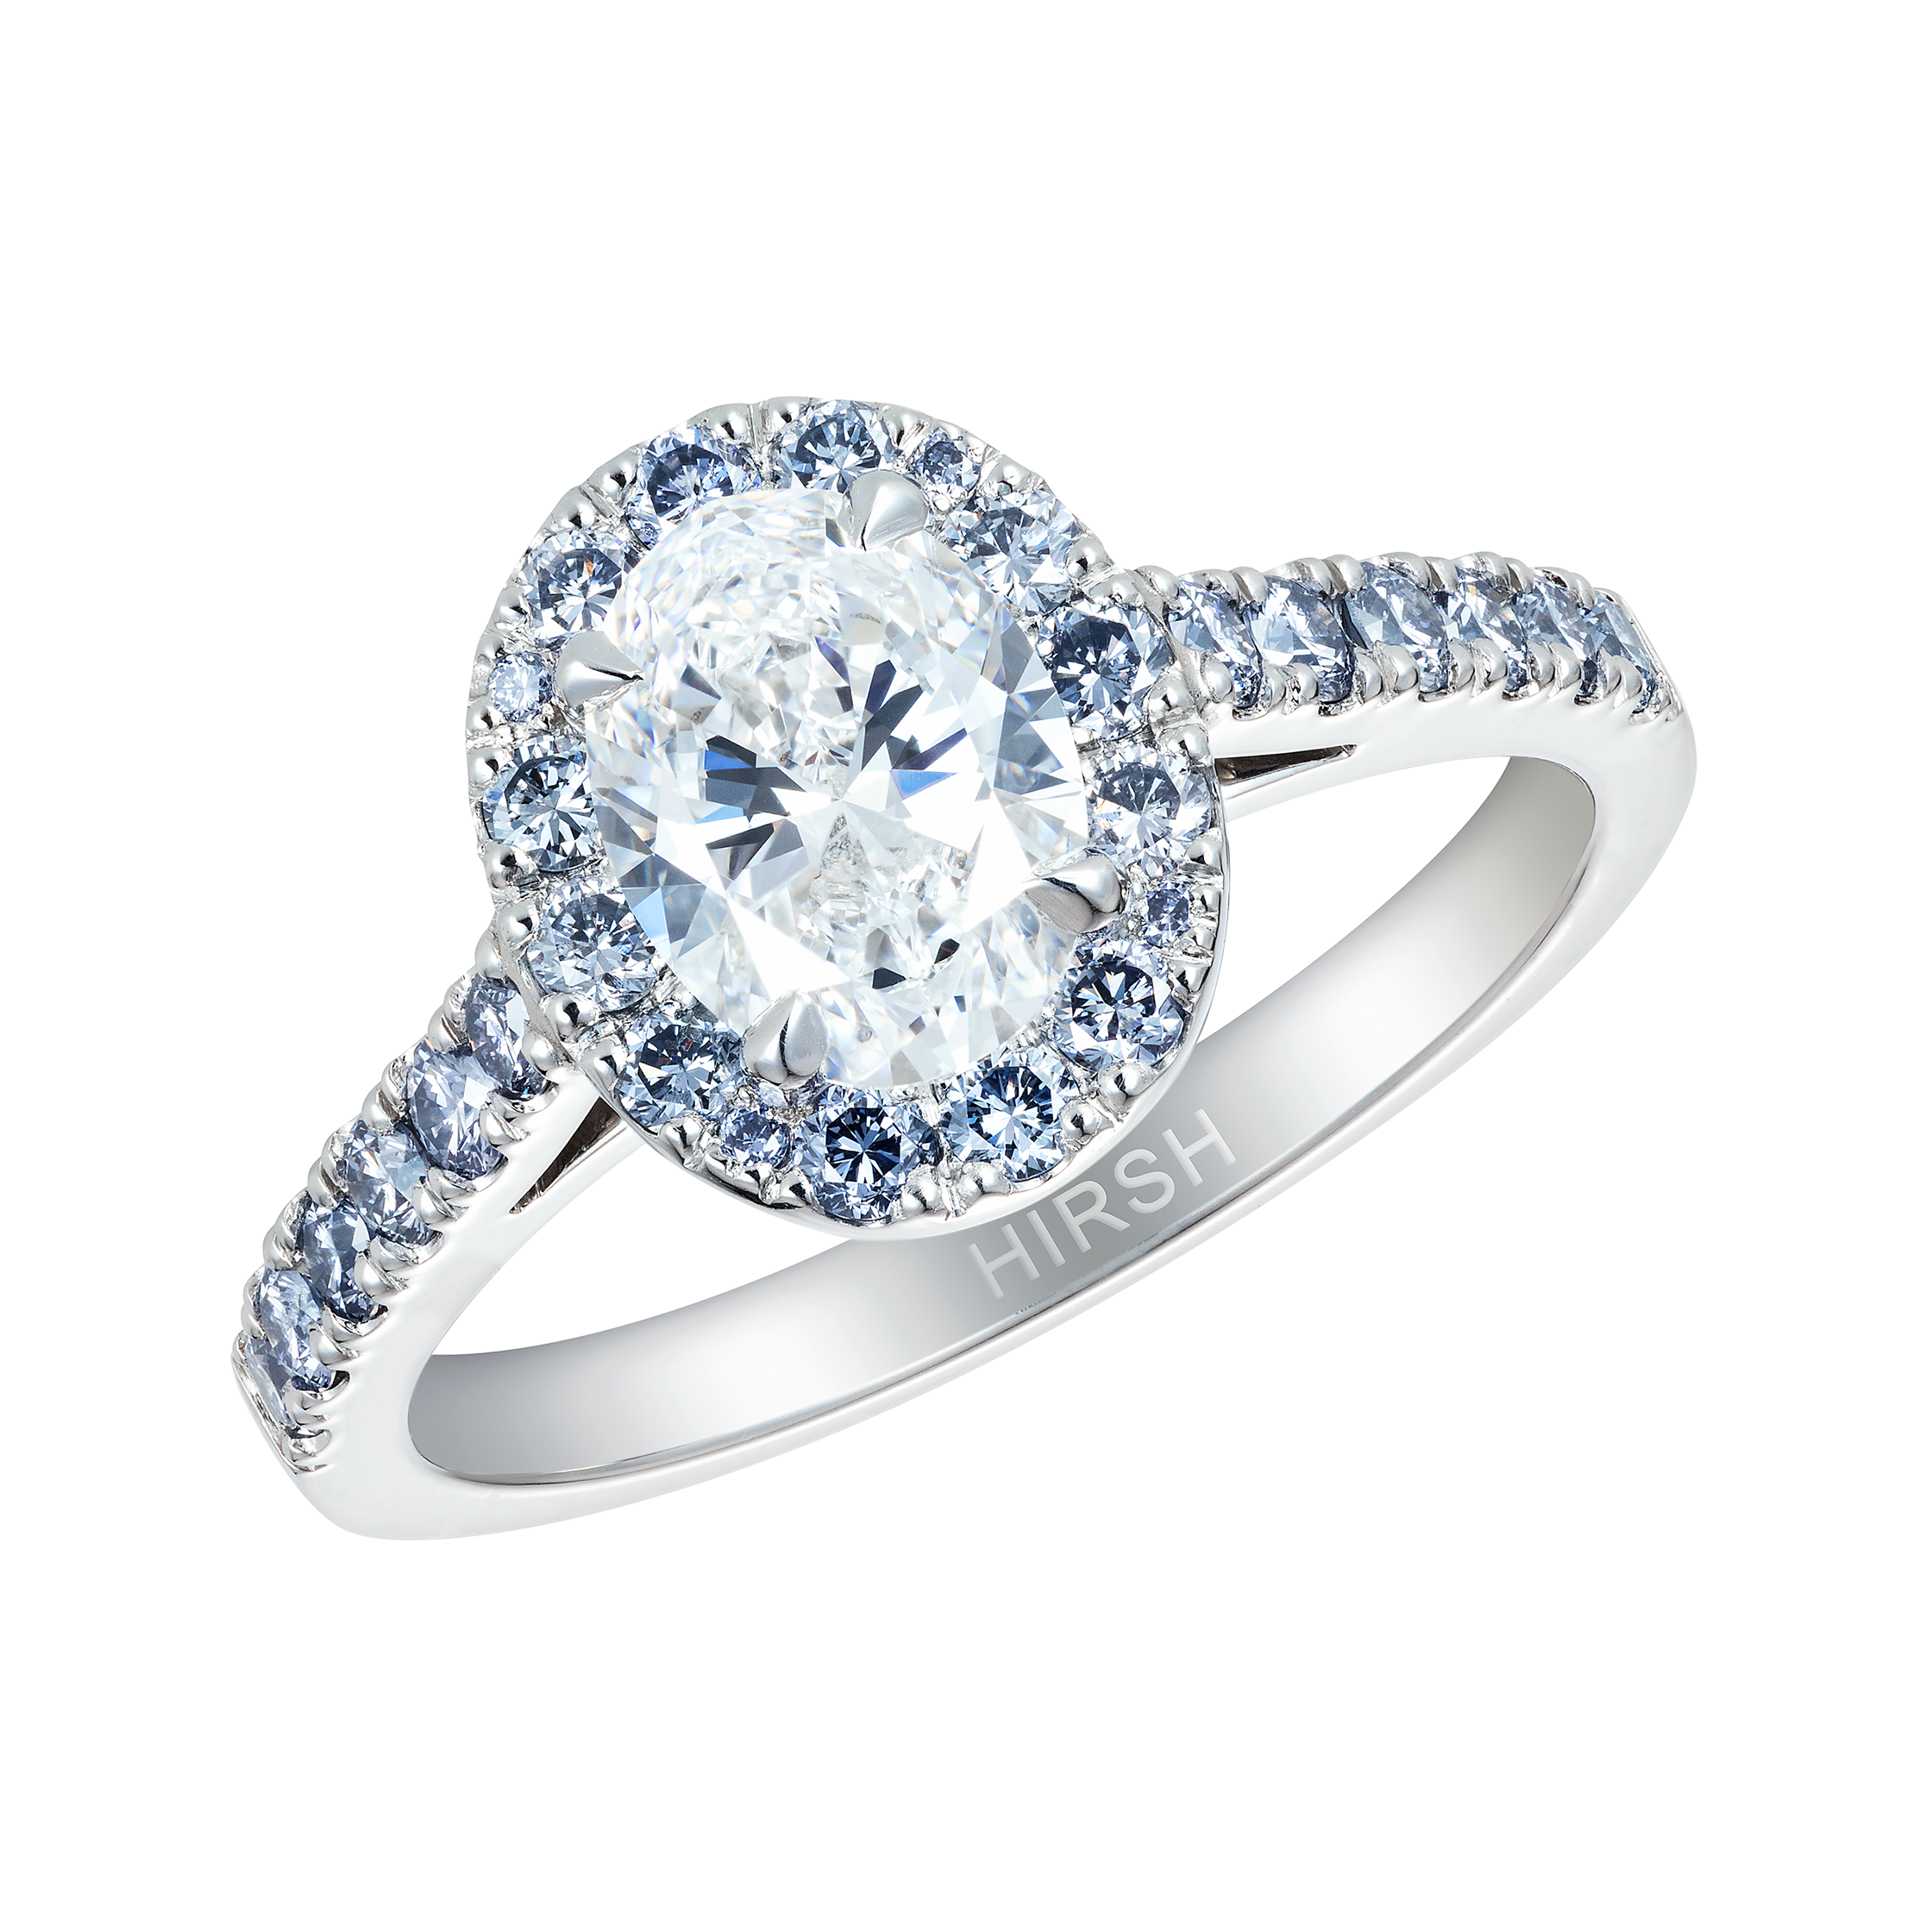 zm en hover gold round ct engagement mv ring cut diamond kay and blue to kaystore tw zoom white